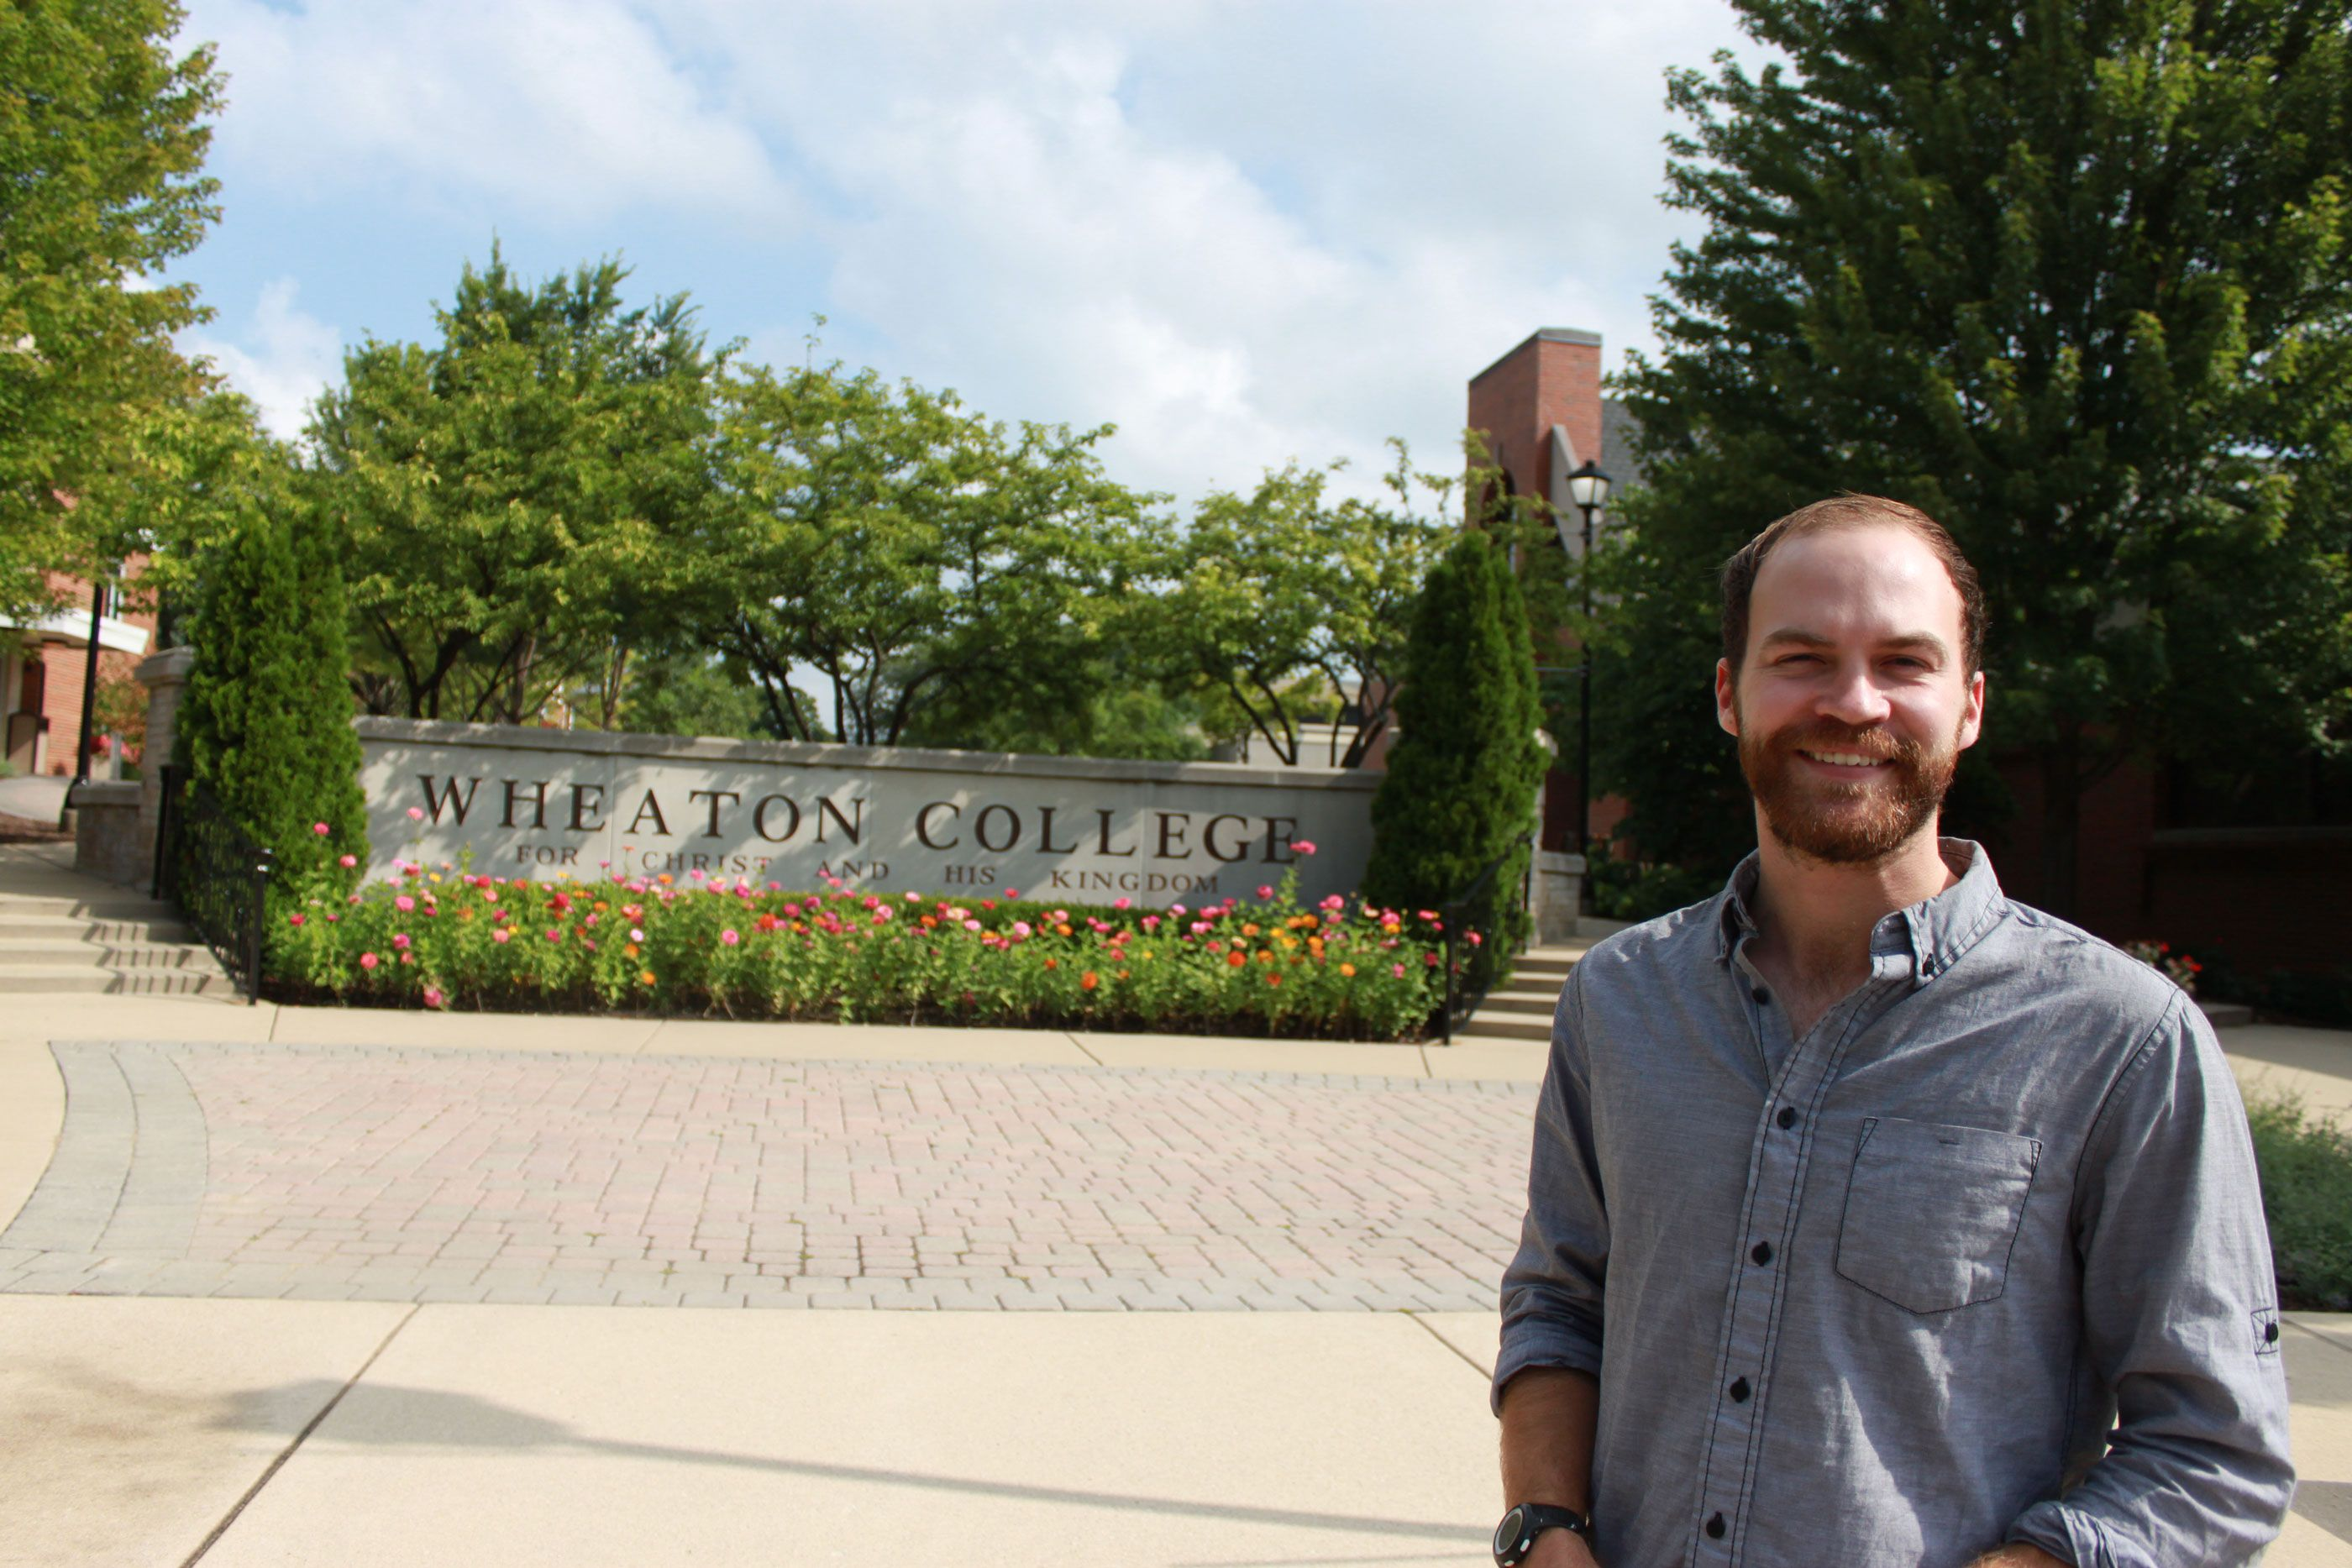 Michael Sawyer standing at Wheaton College sign